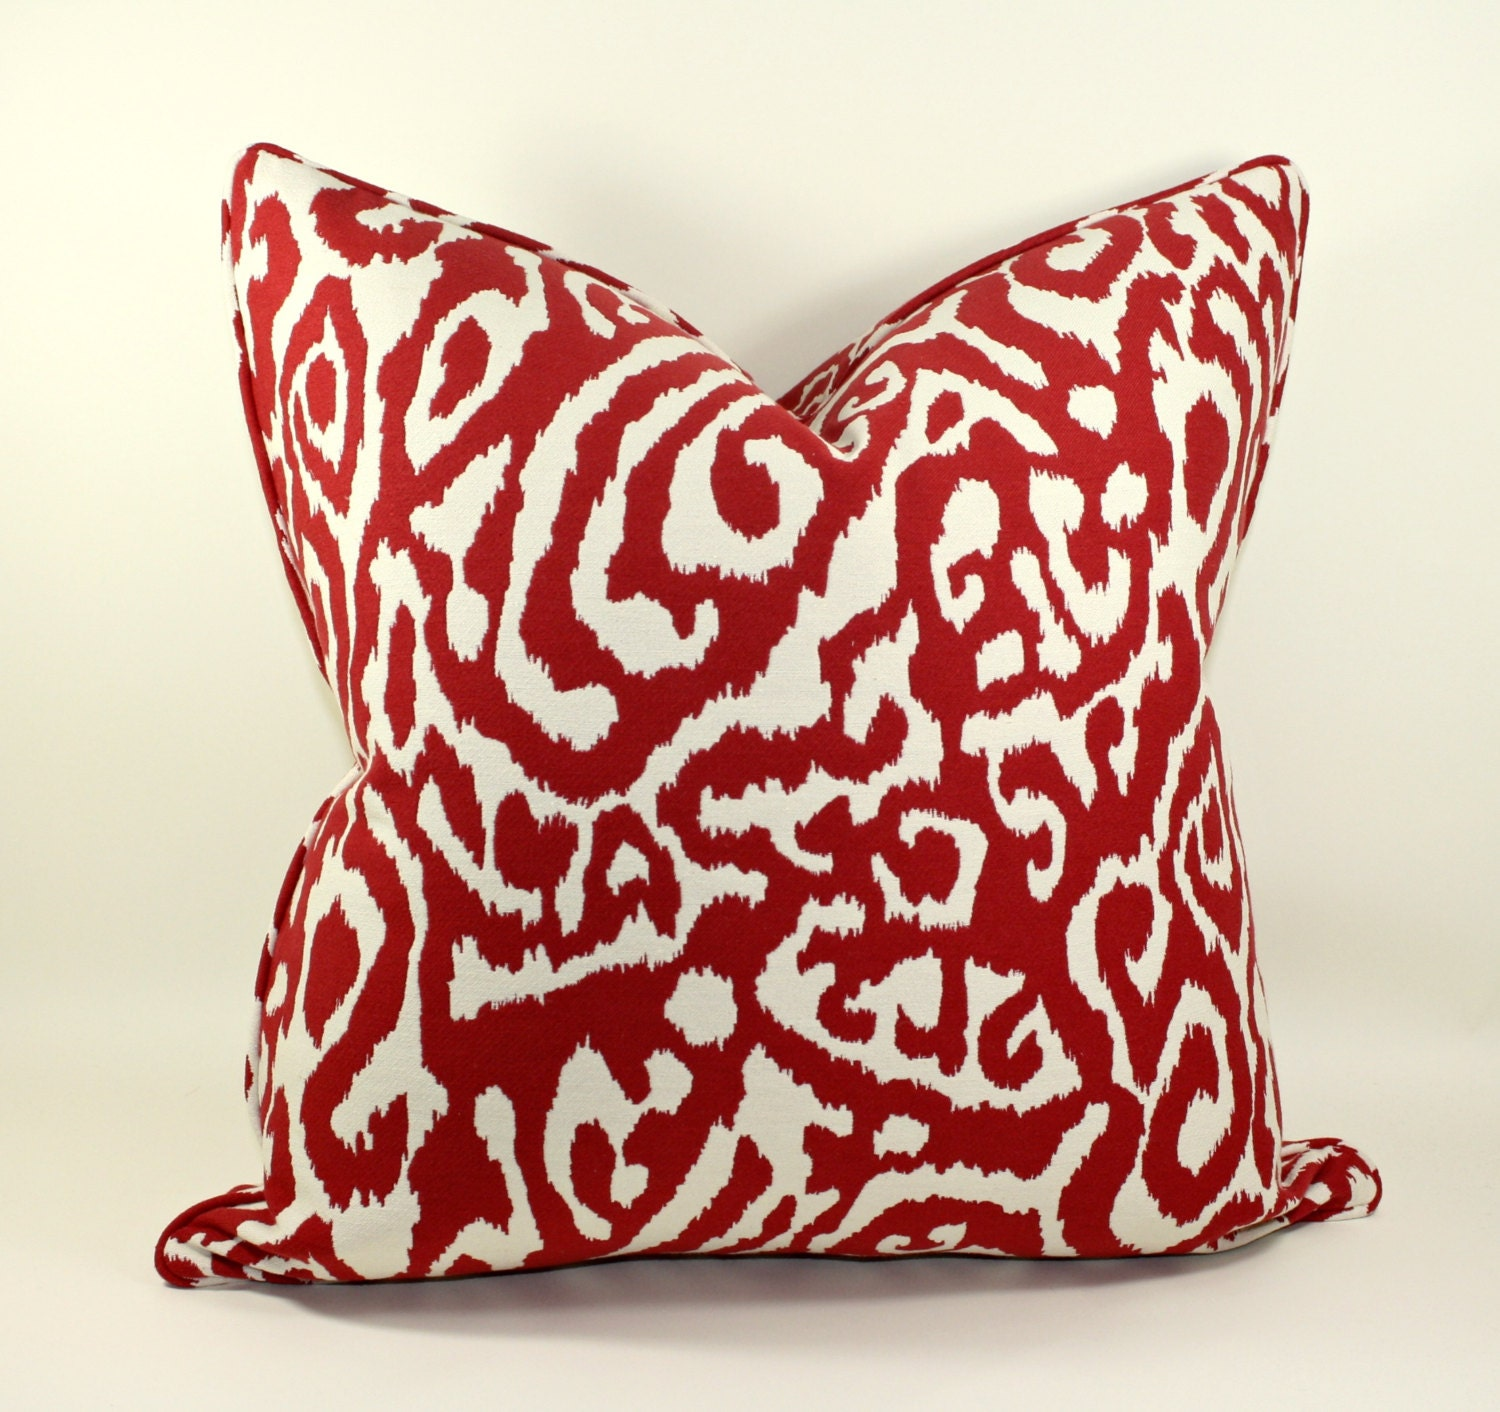 Animal Print Pillow Covers : Animal Print Pillow Cover in Red and White by trendypillows